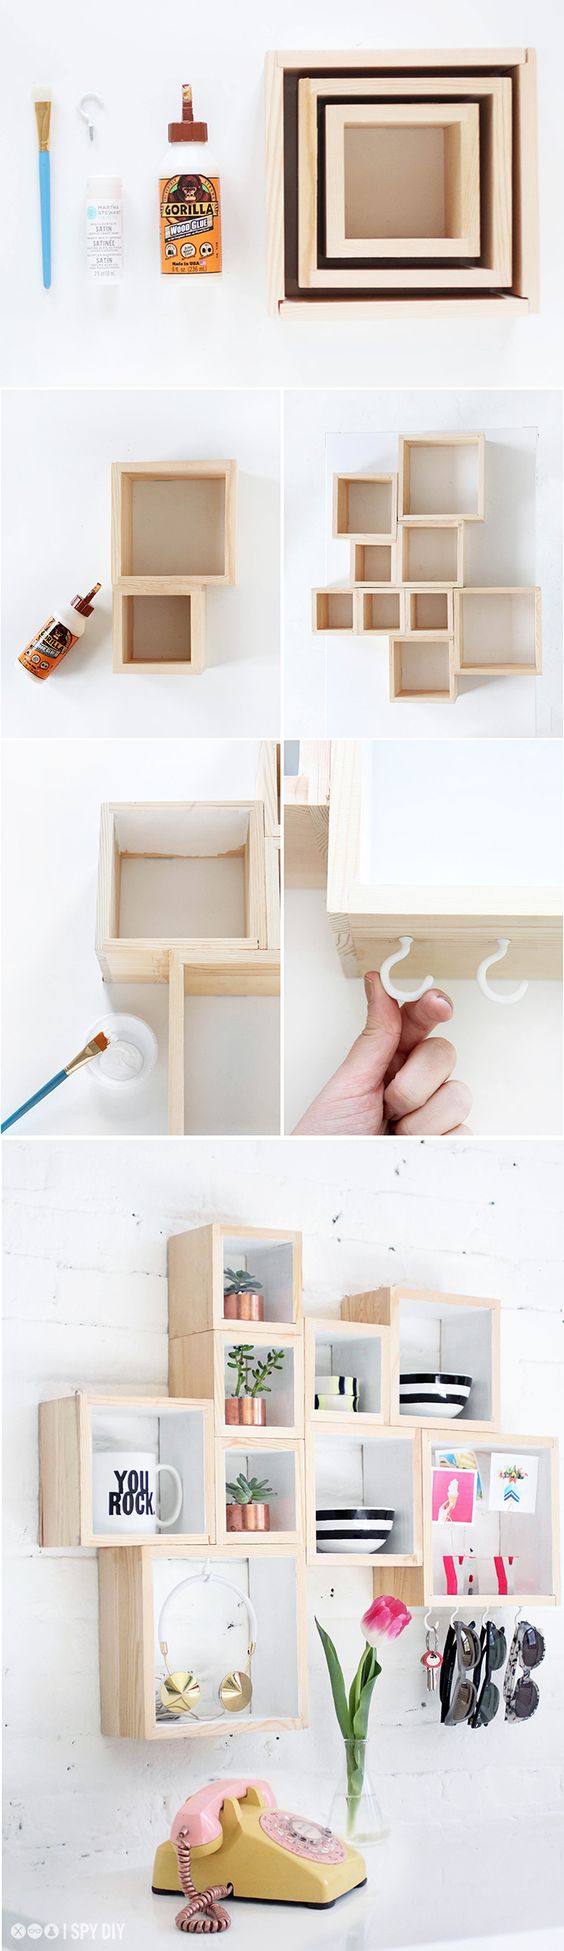 diy shelves build home 11